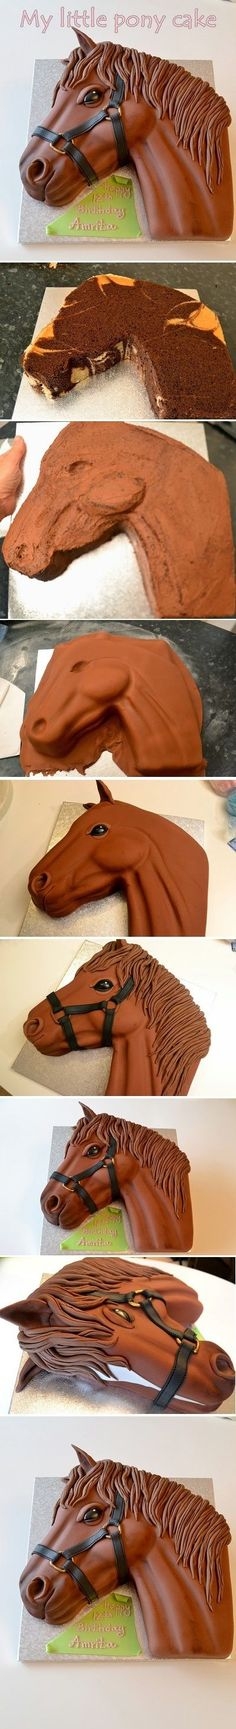 Horse cake ( I would feel bad cutting it) And it looks so realistic! I really like marble cake and chocolate frosting ; Food Cakes, Cupcake Cakes, Cake Decorating Tutorials, Cookie Decorating, Watermelon Cake Recipe, Decoration Patisserie, Horse Cake, Sculpted Cakes, Animal Cakes